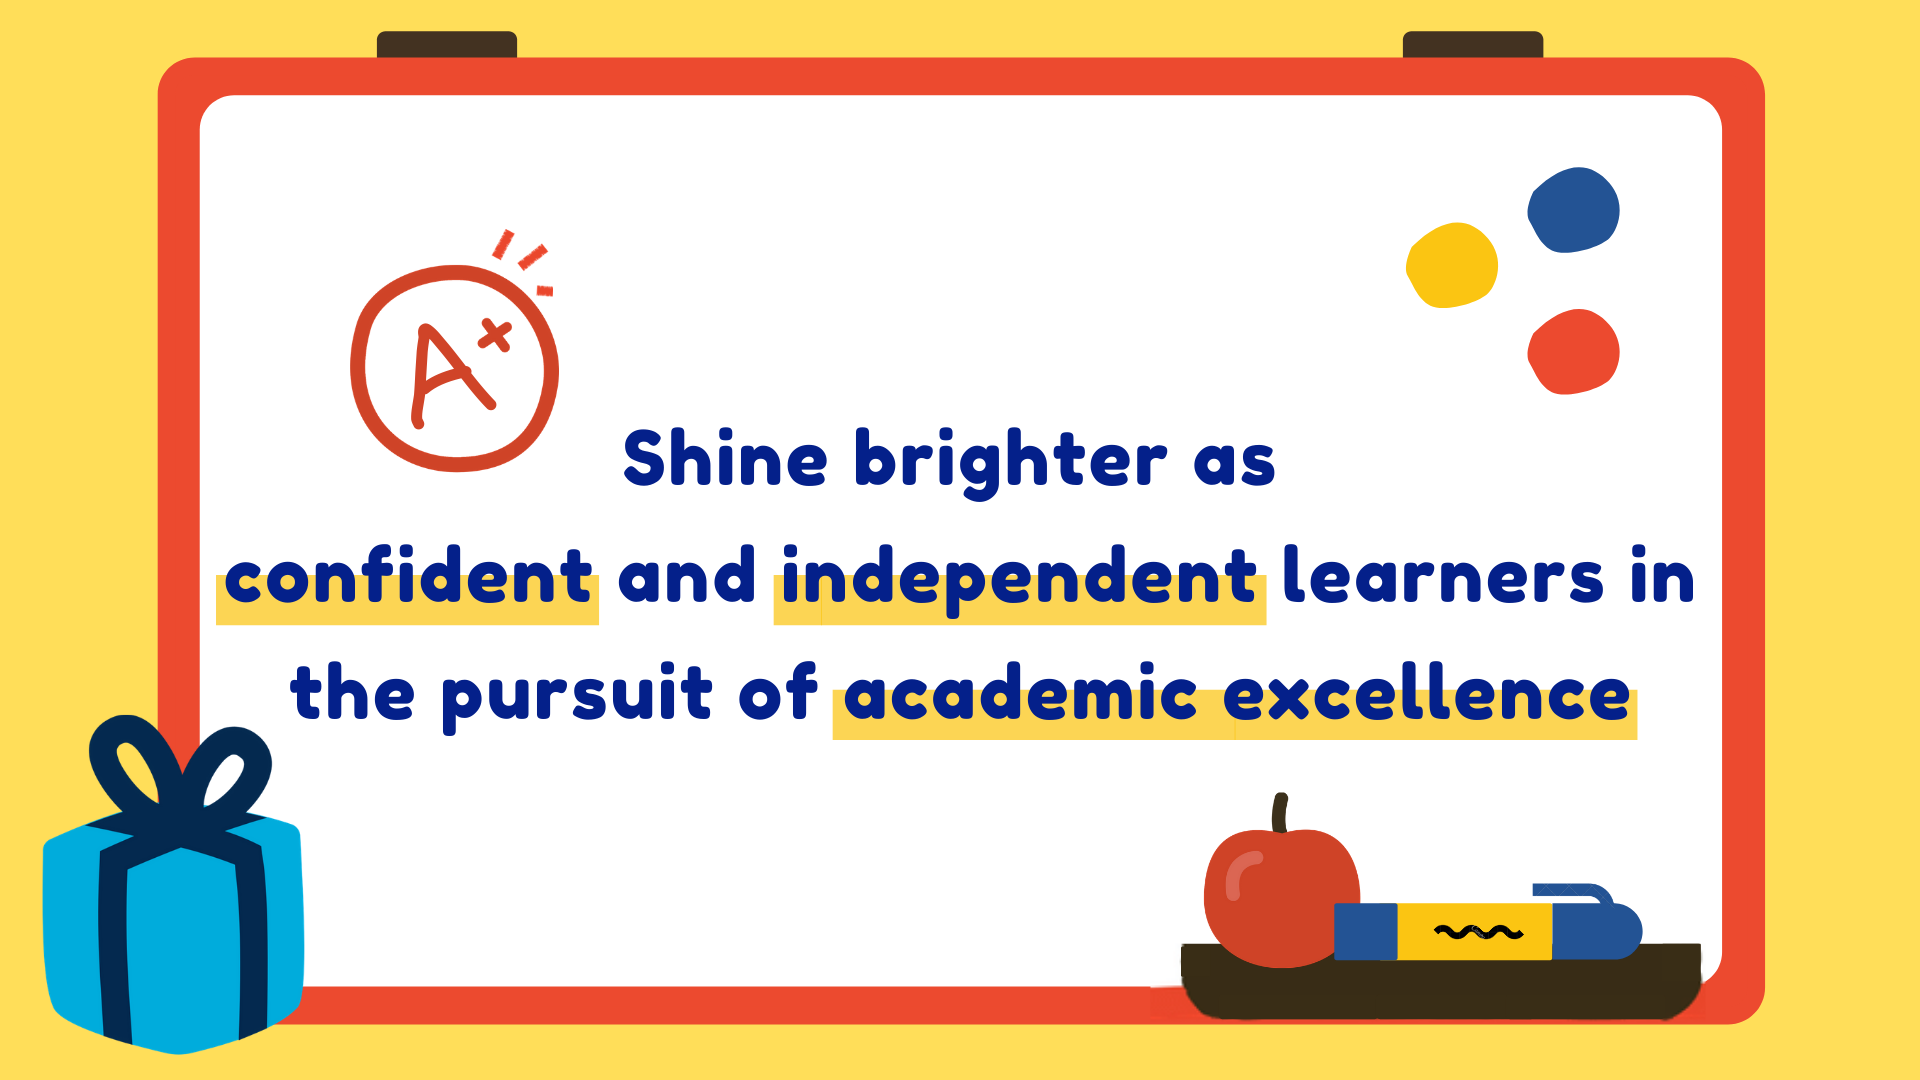 Why Do Some Children Shine Brighter Than Others?